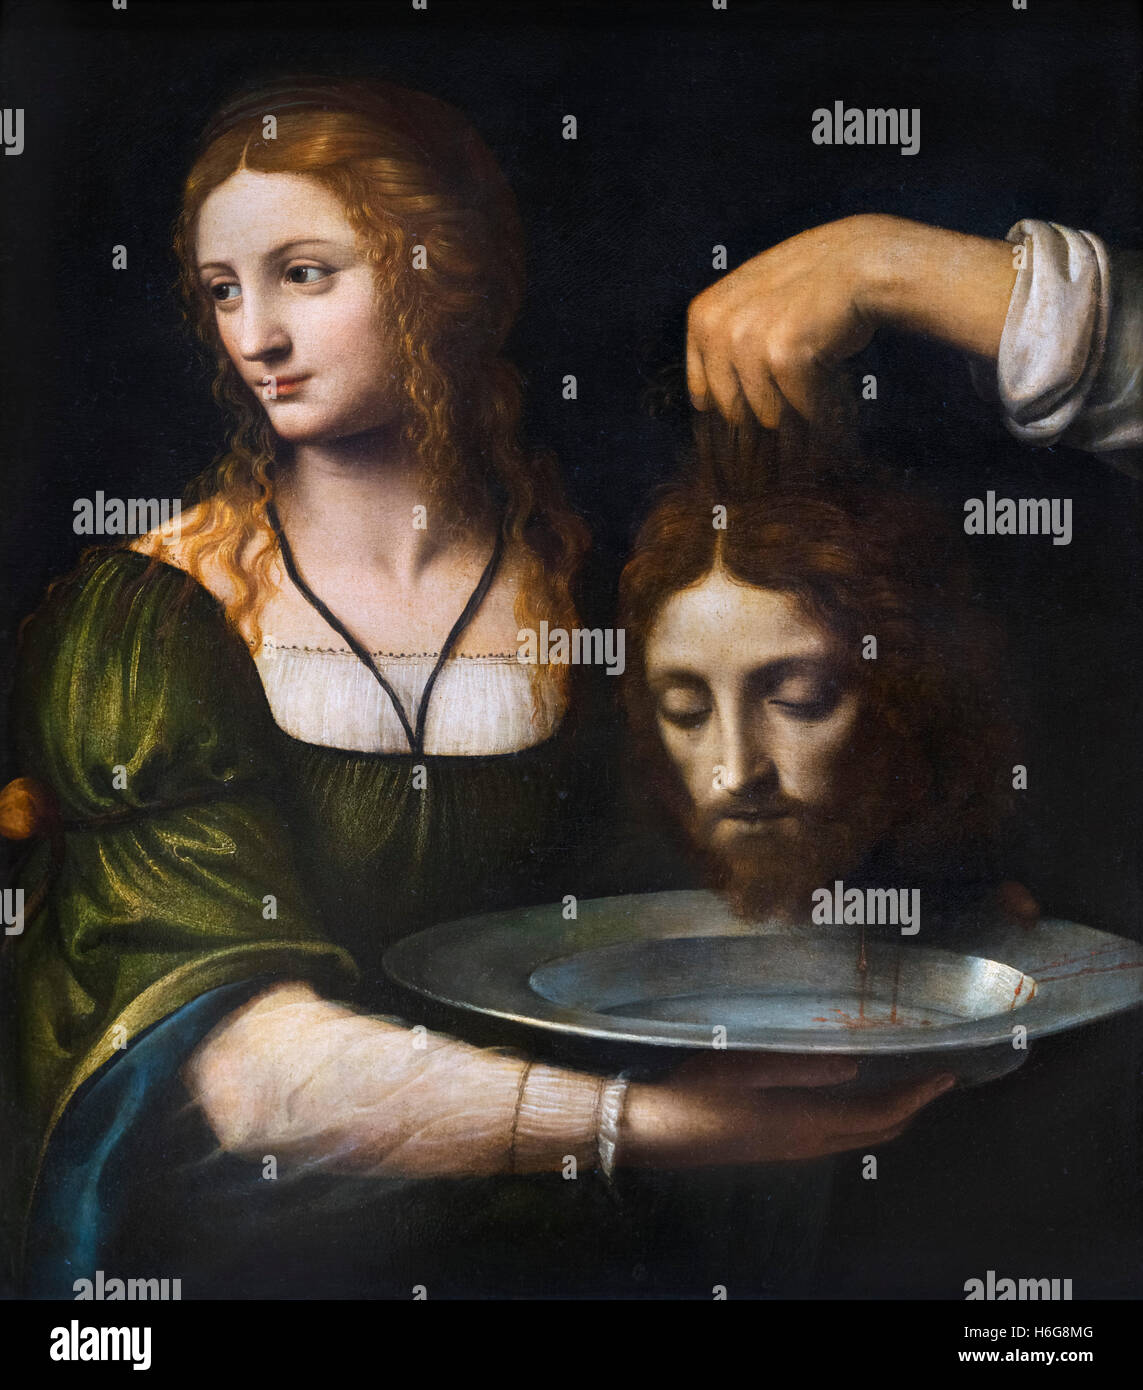 Salome with the Head of John the Baptist by Bernardo Luini (c.1480-1532), oil on panel, early 1500s. - Stock Image